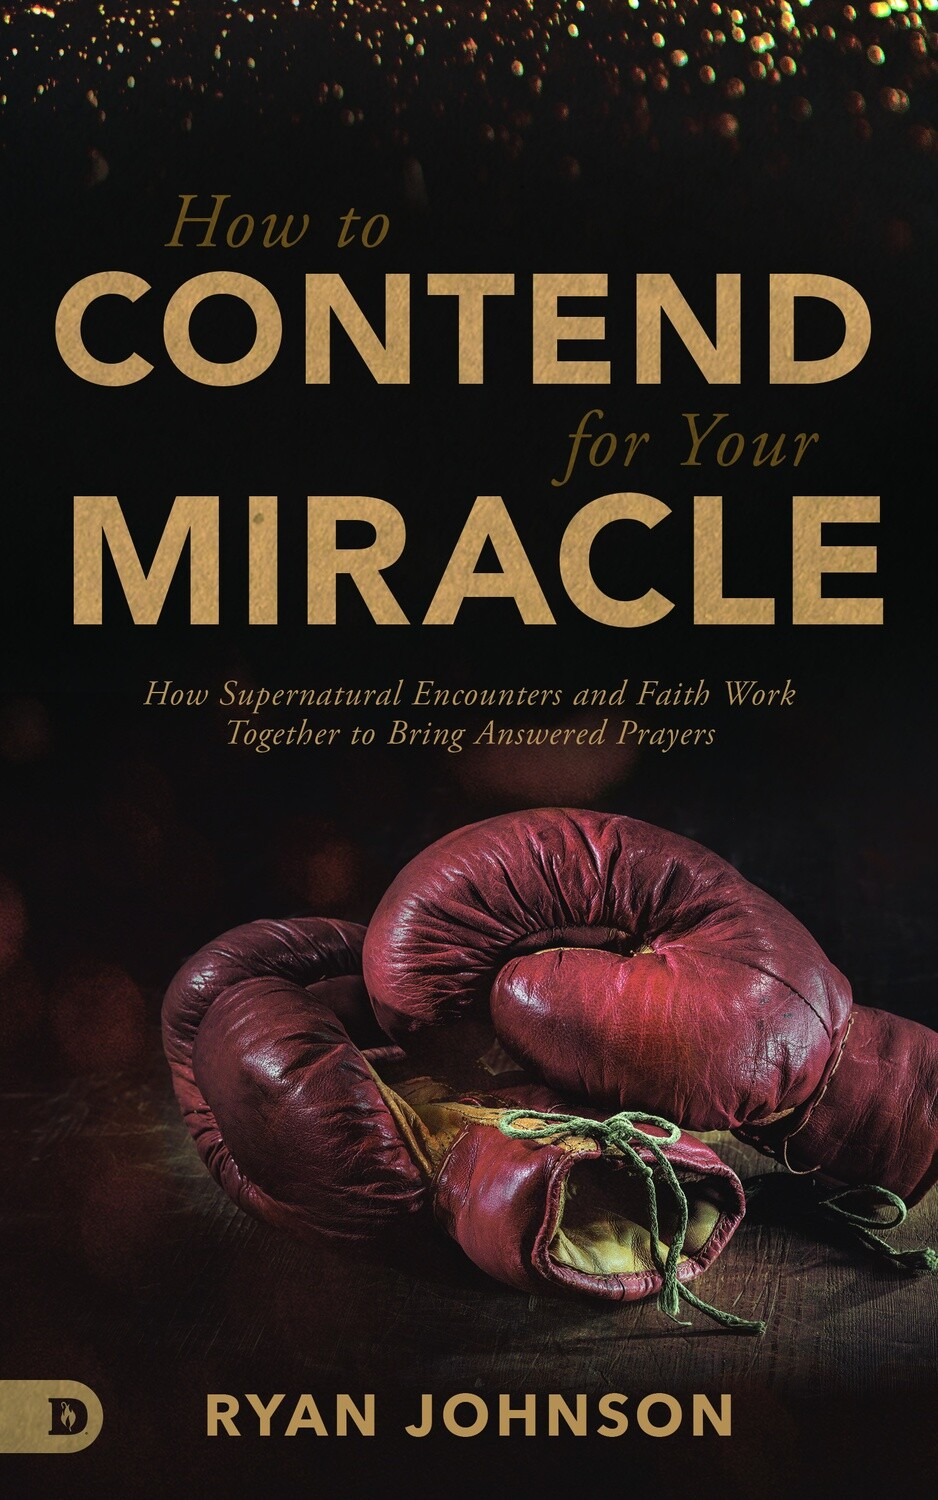 How to Contend for Your Miracle (Autographed Copy)